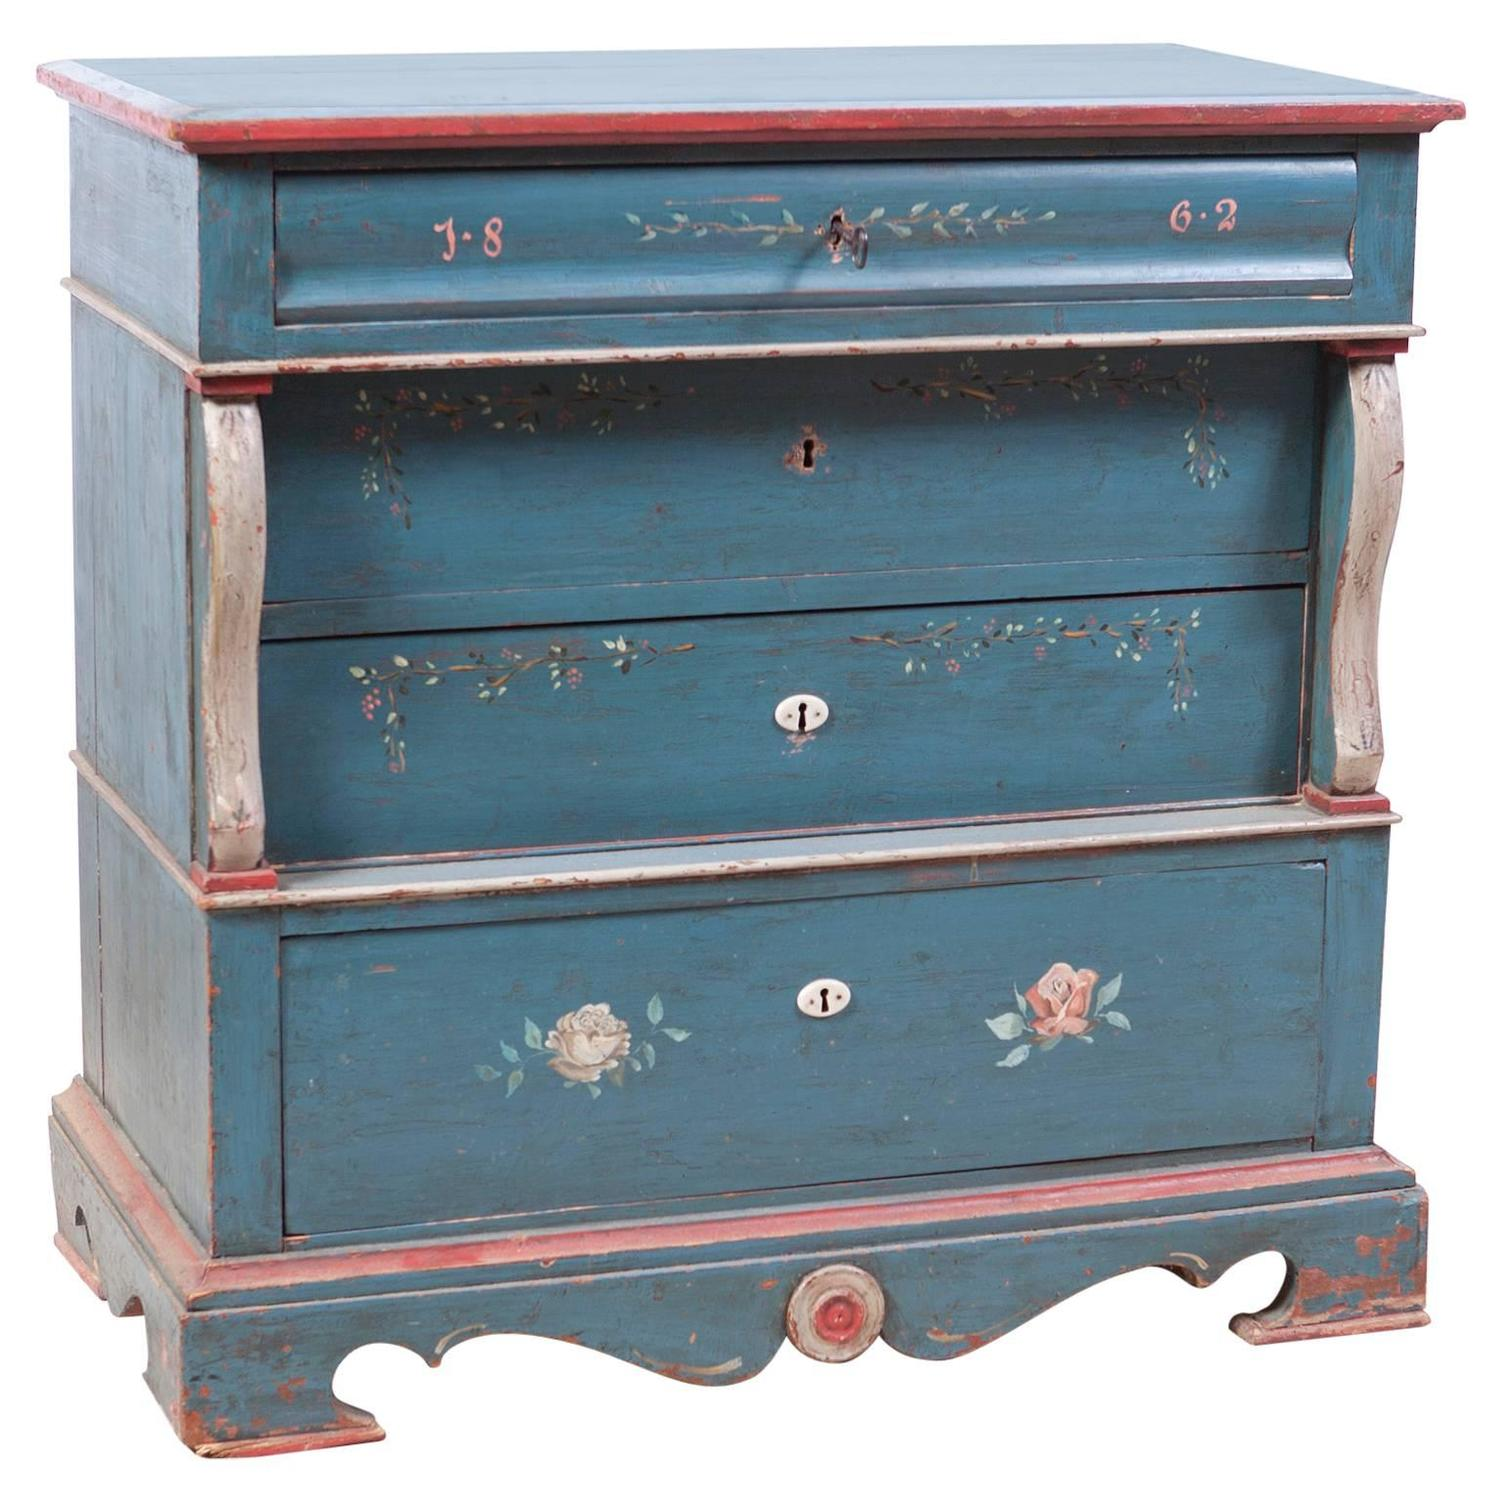 Antique Scandinavian Wedding Chest with Blue Paint and Pink Flowers, Dated  1862 - Painted Bridal Chest Of Drawers, C. 1790 - Bonnin Ashley Antiques